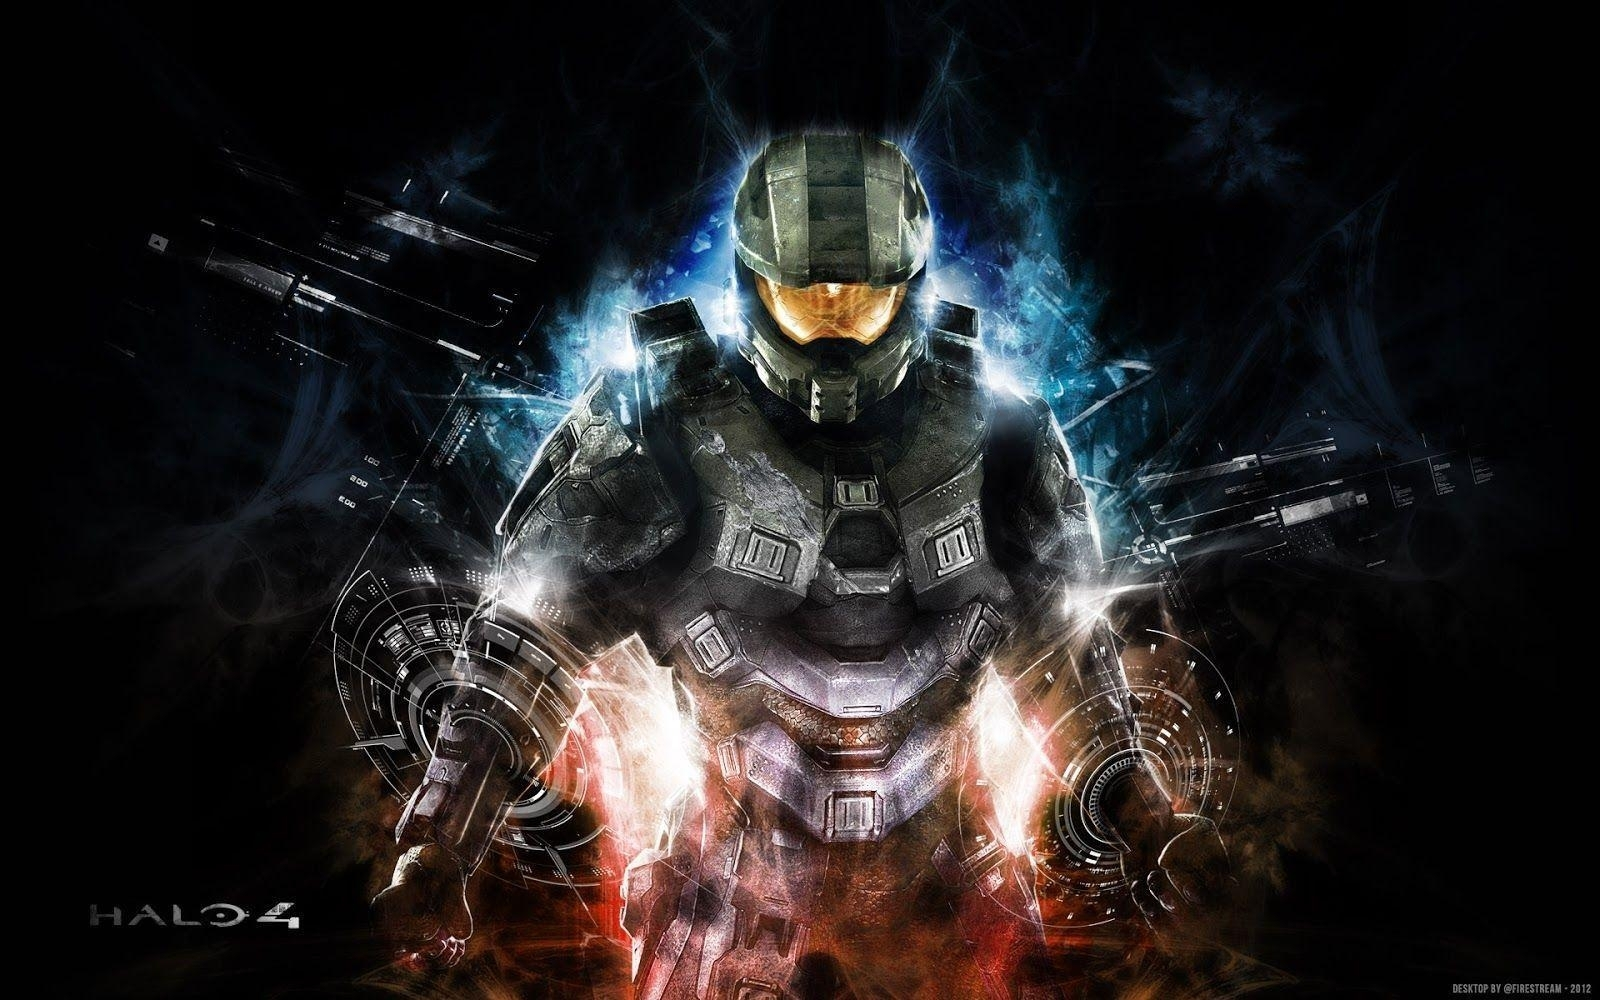 halo 4 master chief wallpapers - wallpaper cave